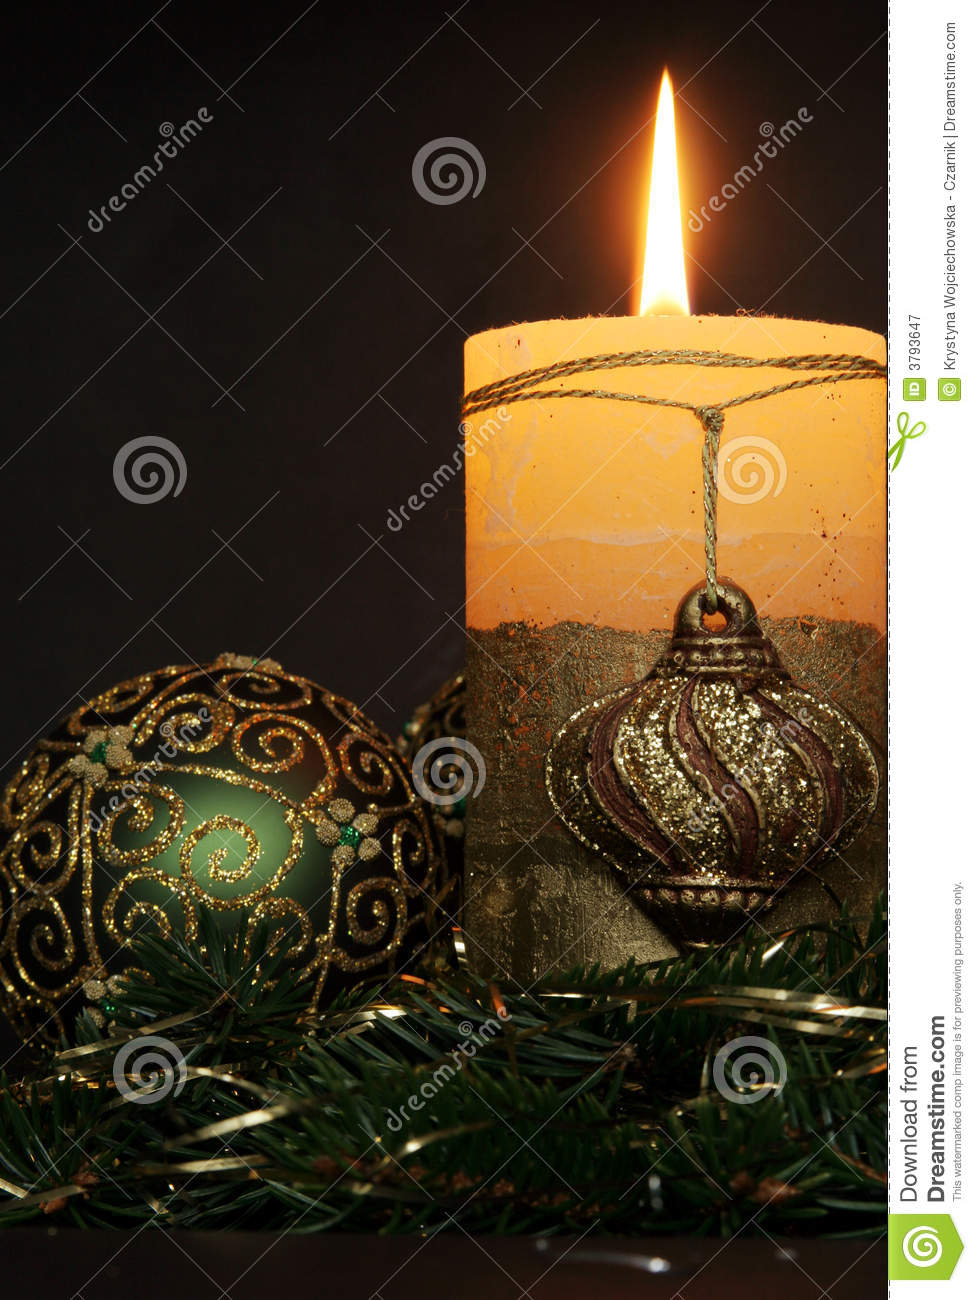 Christmas candles and balls ornaments royalty free stock for Christmas candles and ornaments